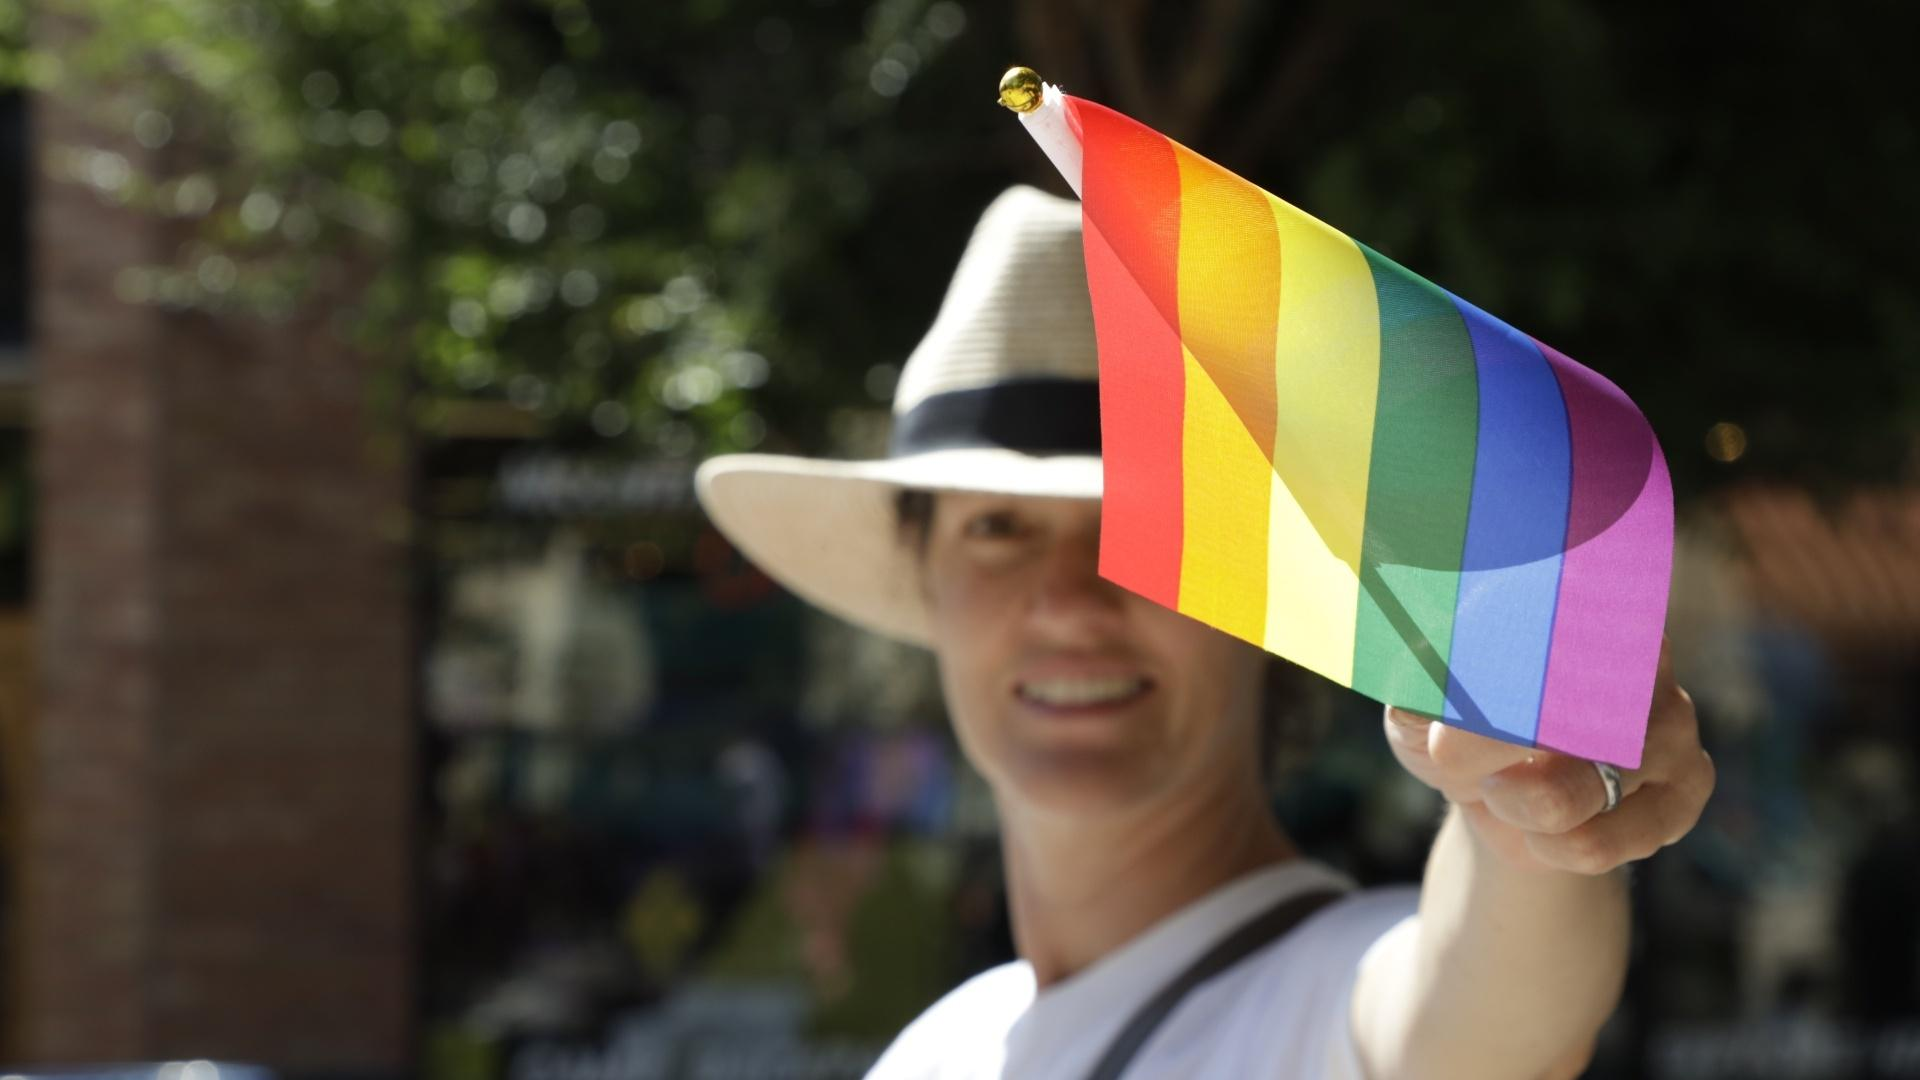 A participant in the Colorado West Pride Fest parade in Grand Junction waves a Pride flag, September 12, 2021.